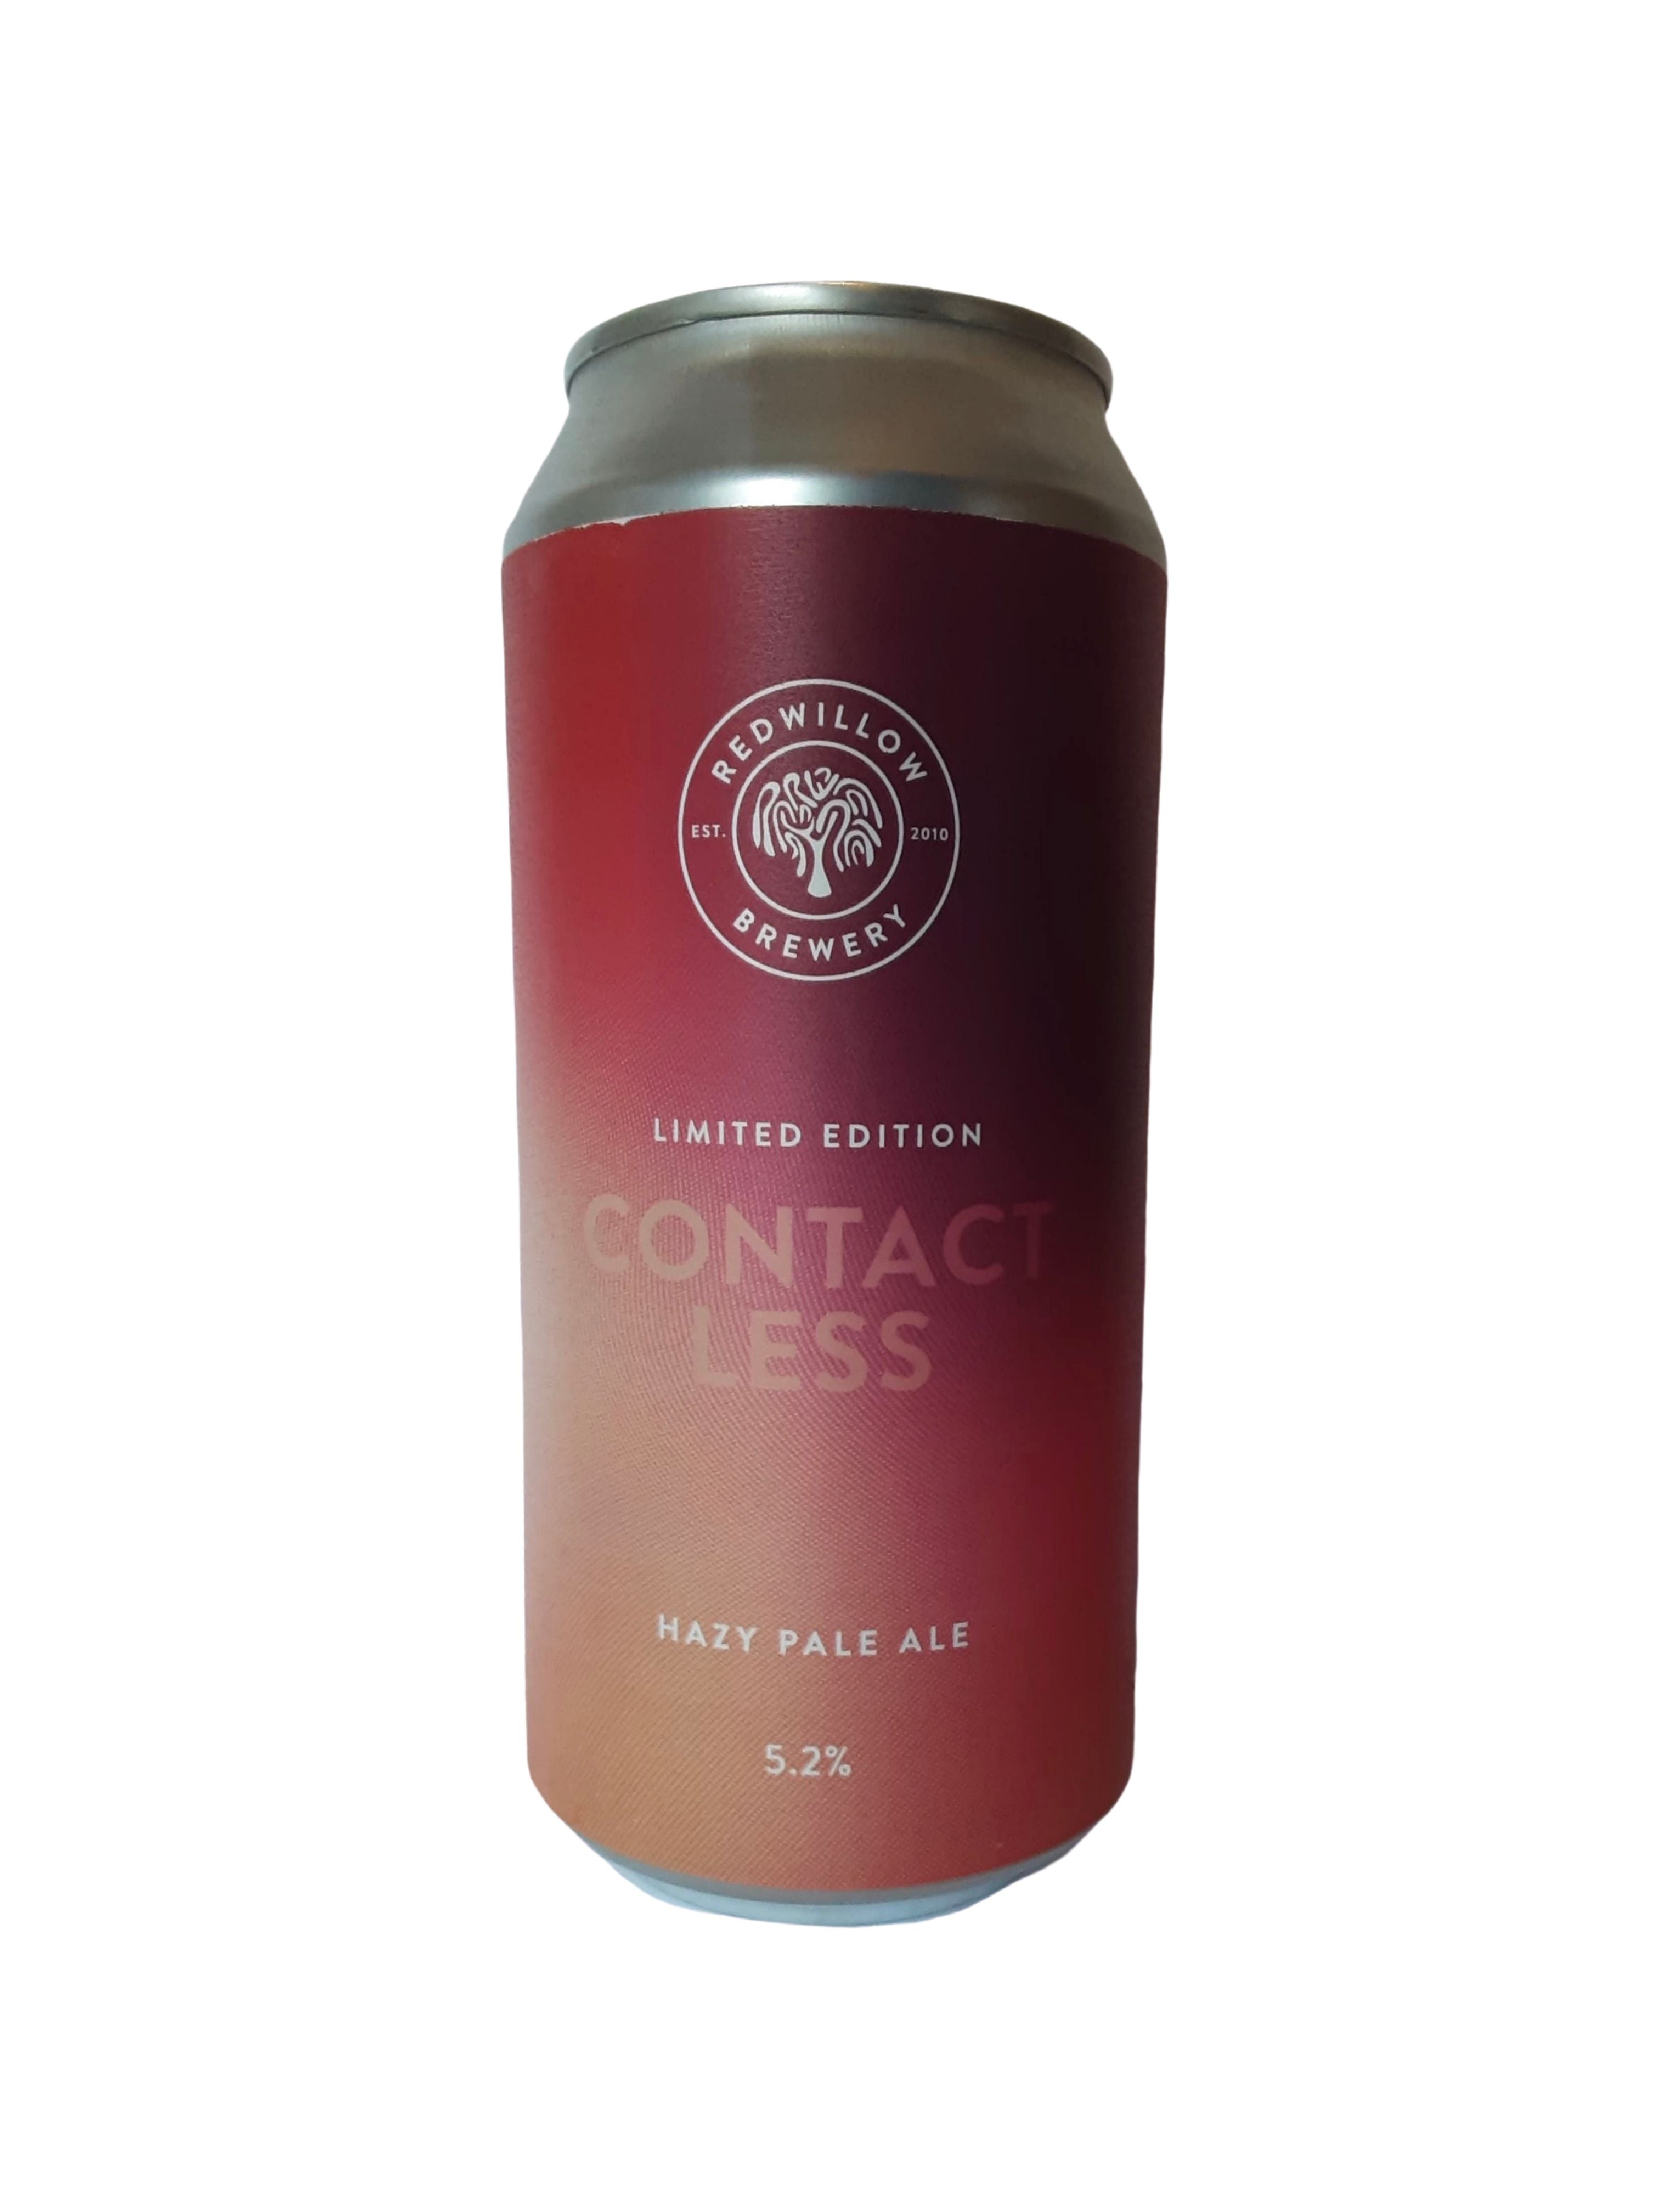 Redwillow - Contactless - Pale Ale - 5.2% (Brand New)